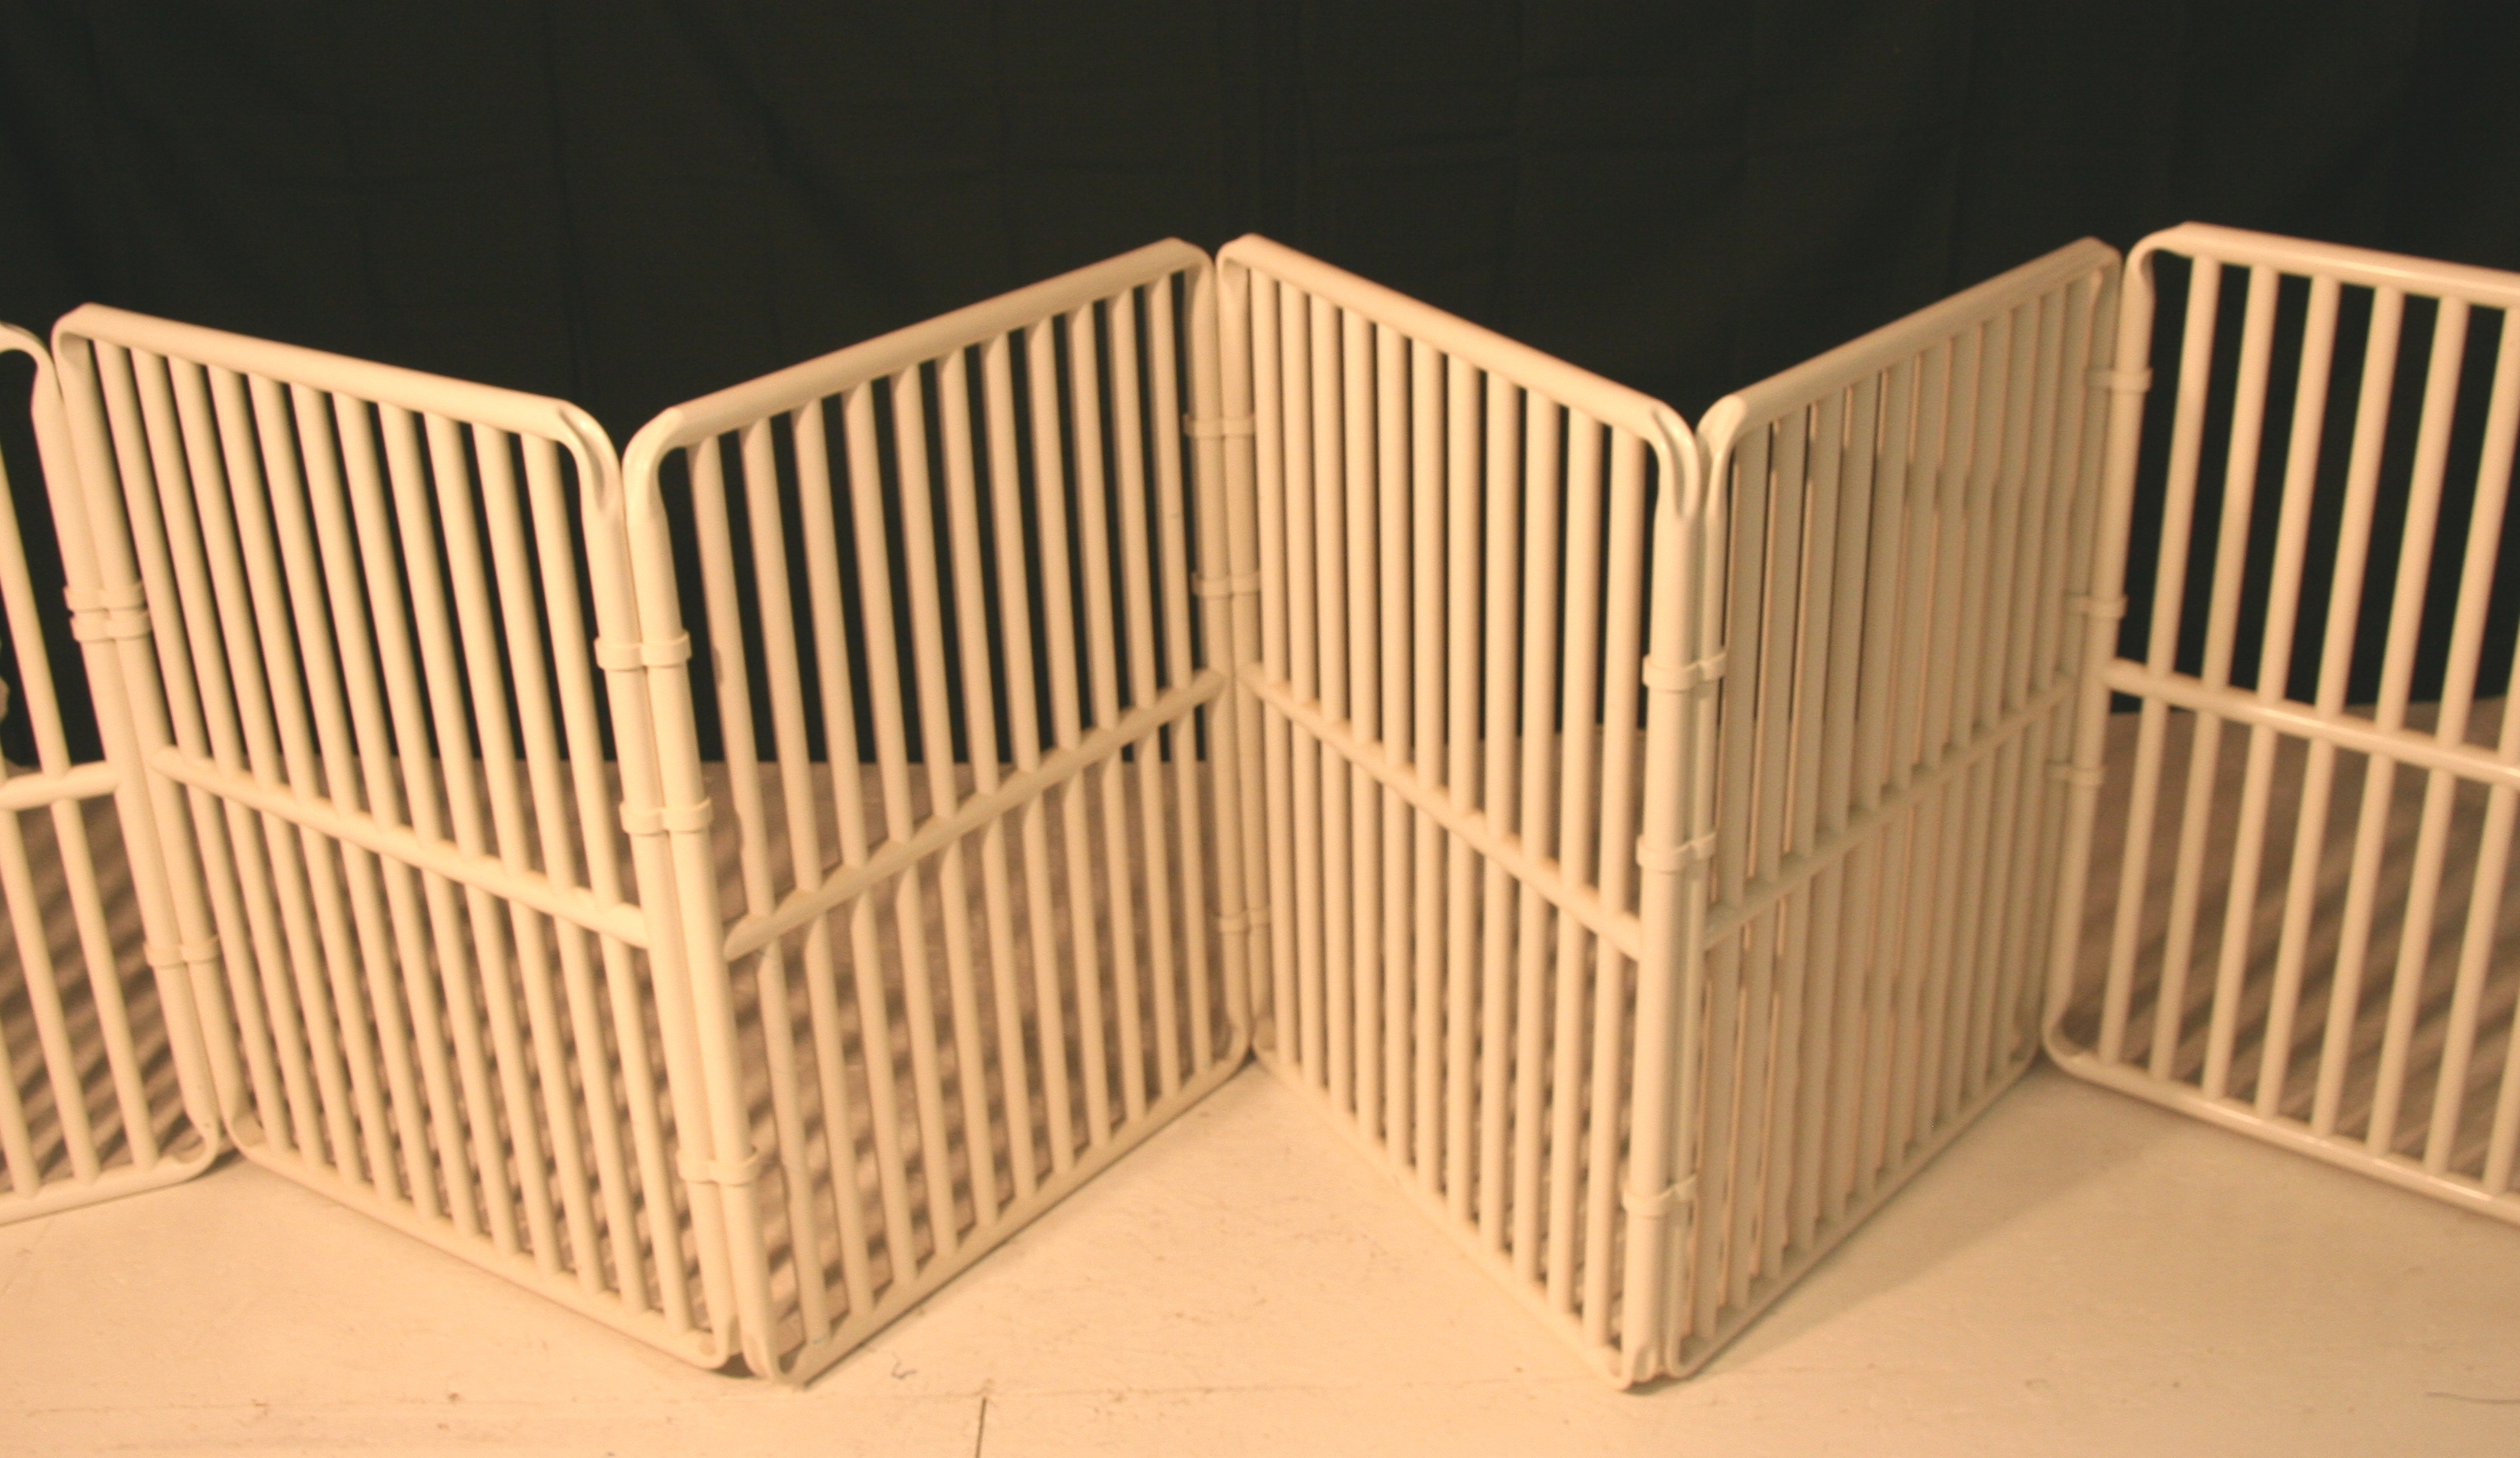 10\' Wide Indoor Dog Gate Is Now Available From Rover Company